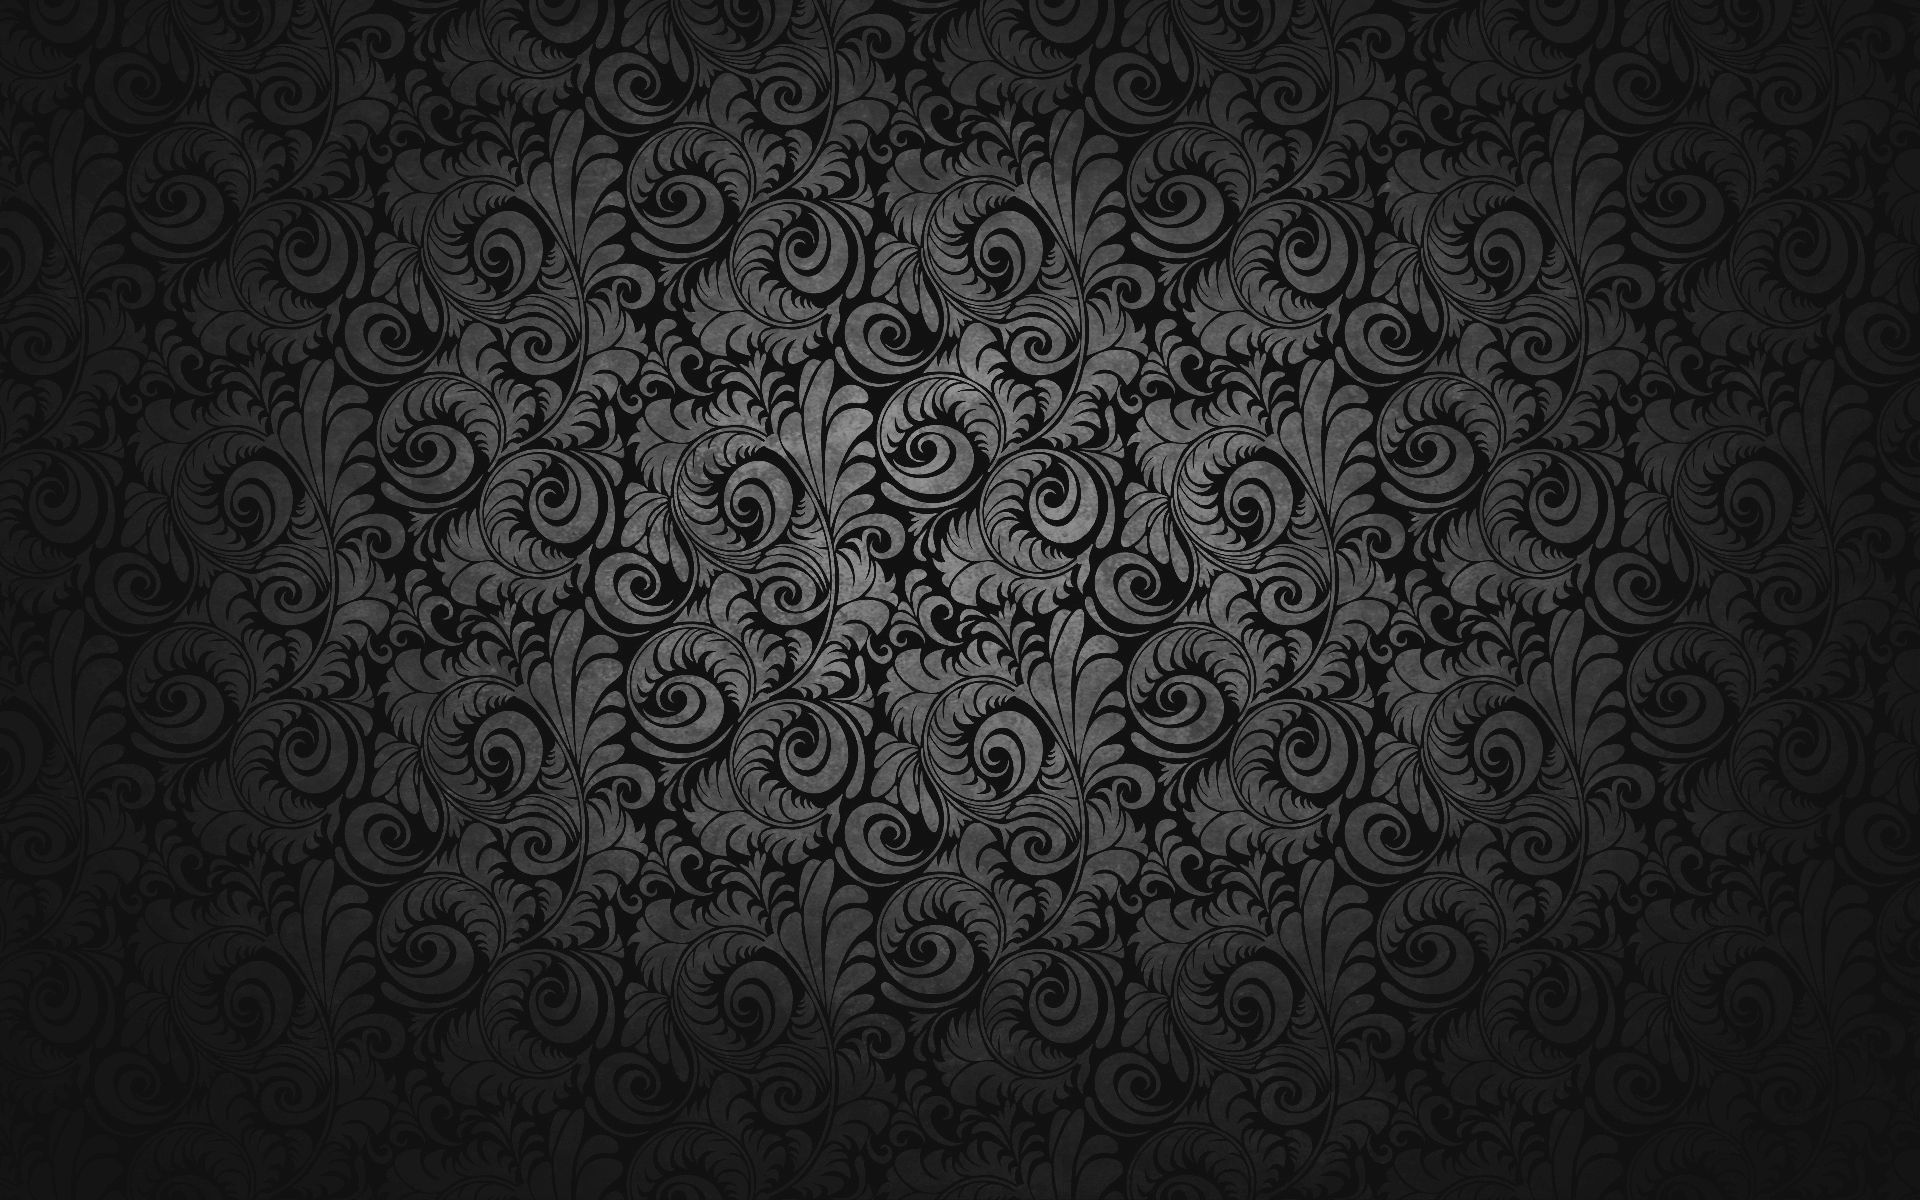 1920x1200 I like this wallpaper | Black background wallpaper, Cool black ...